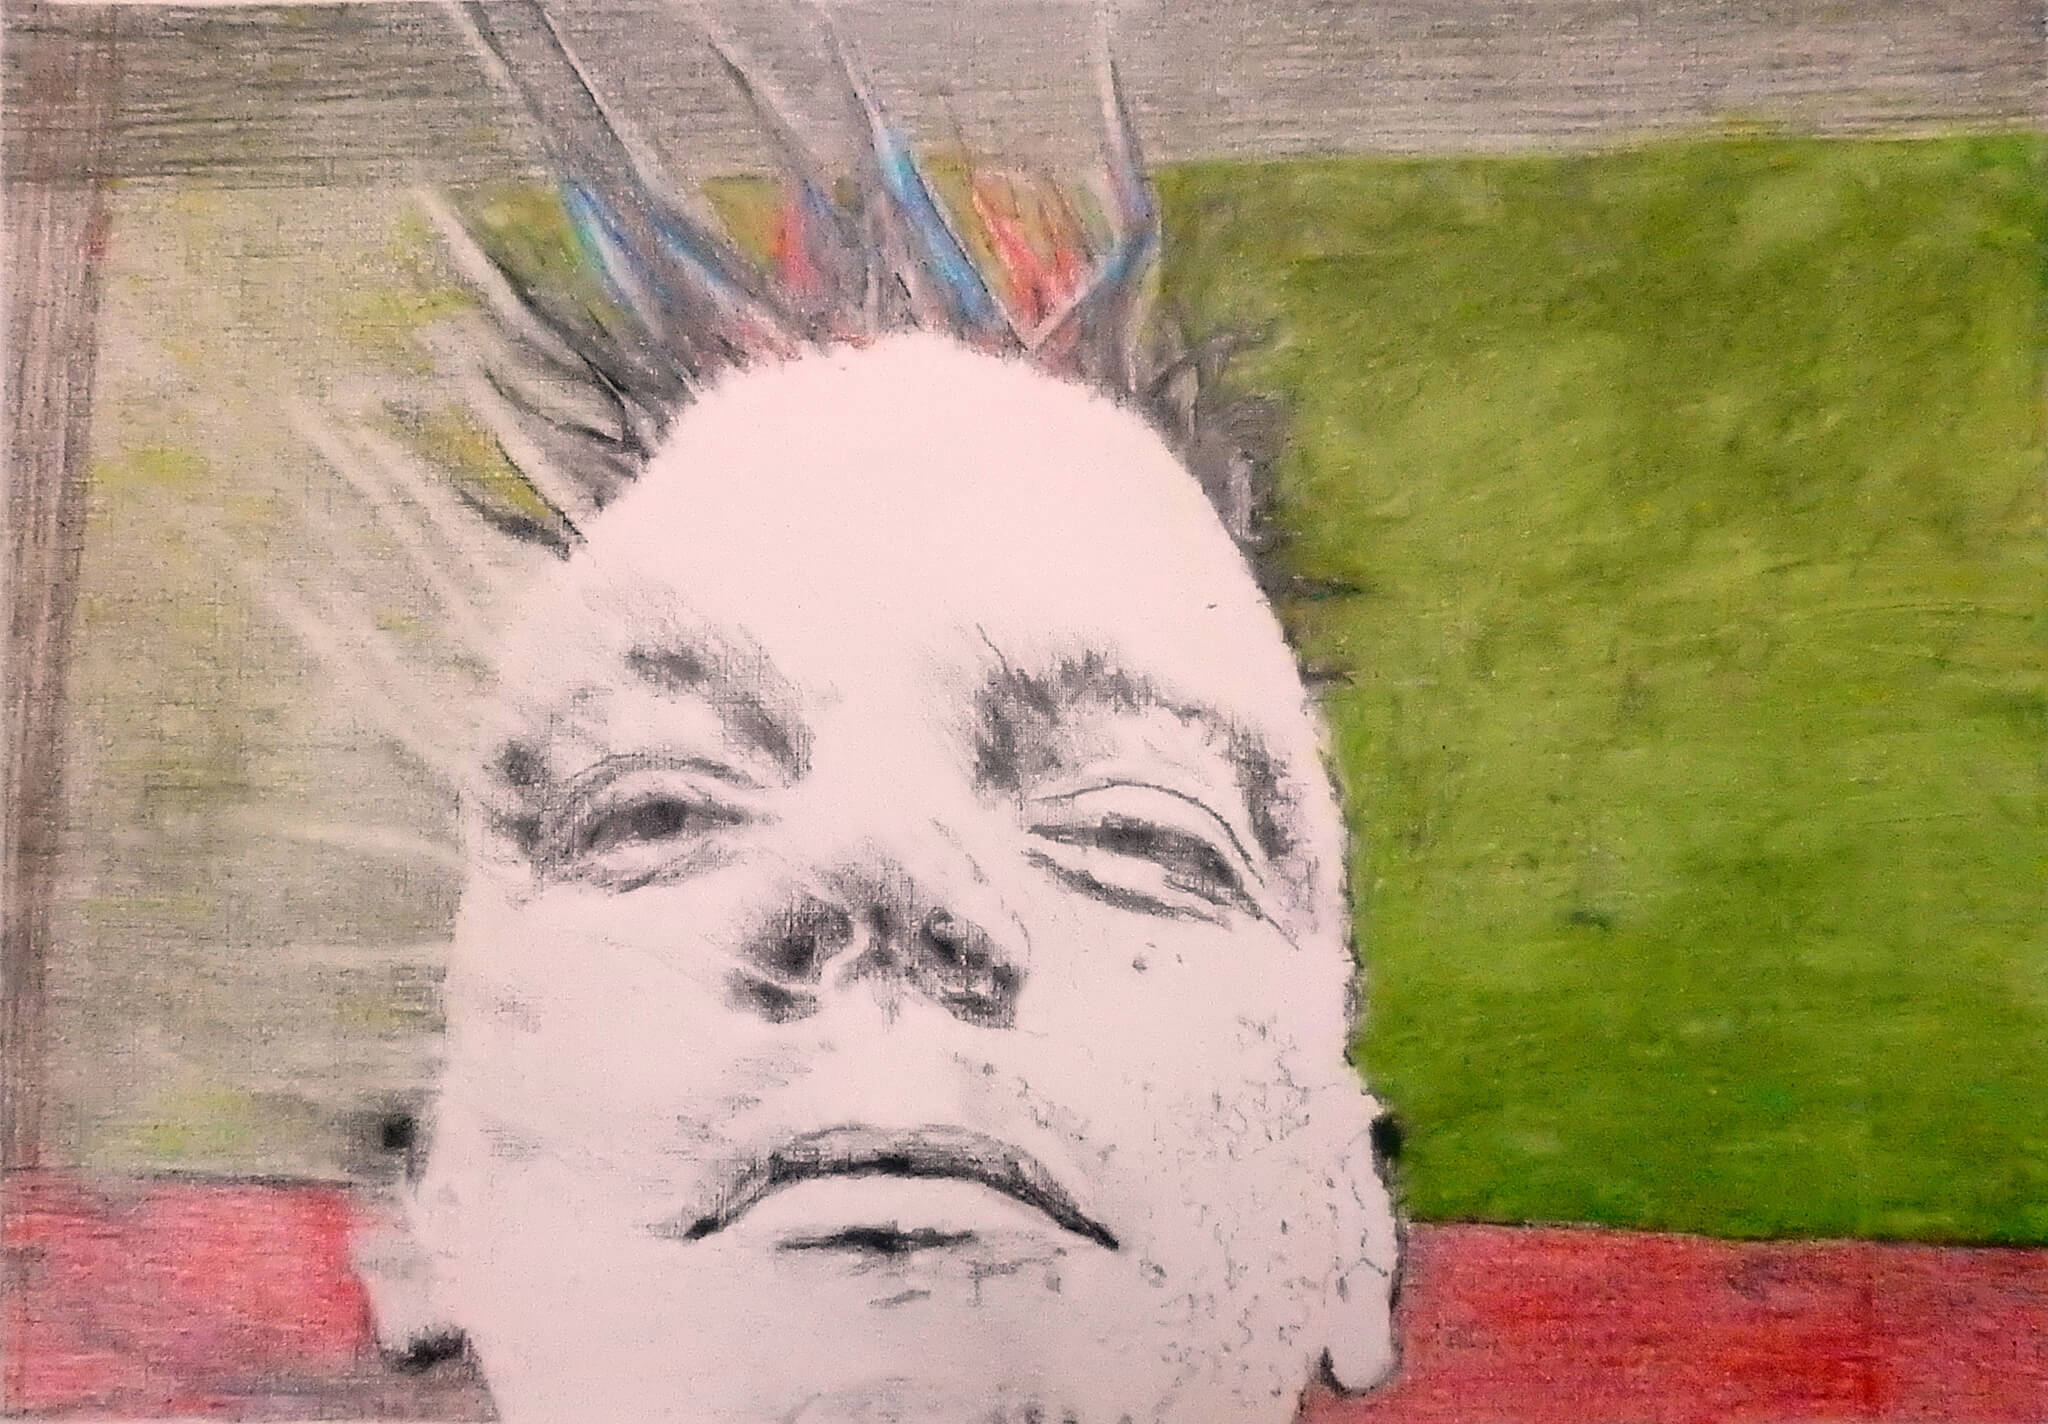 Spikey bed o' nails artist in Covent Garden mixed media on paper artwork by Stella Tooth.